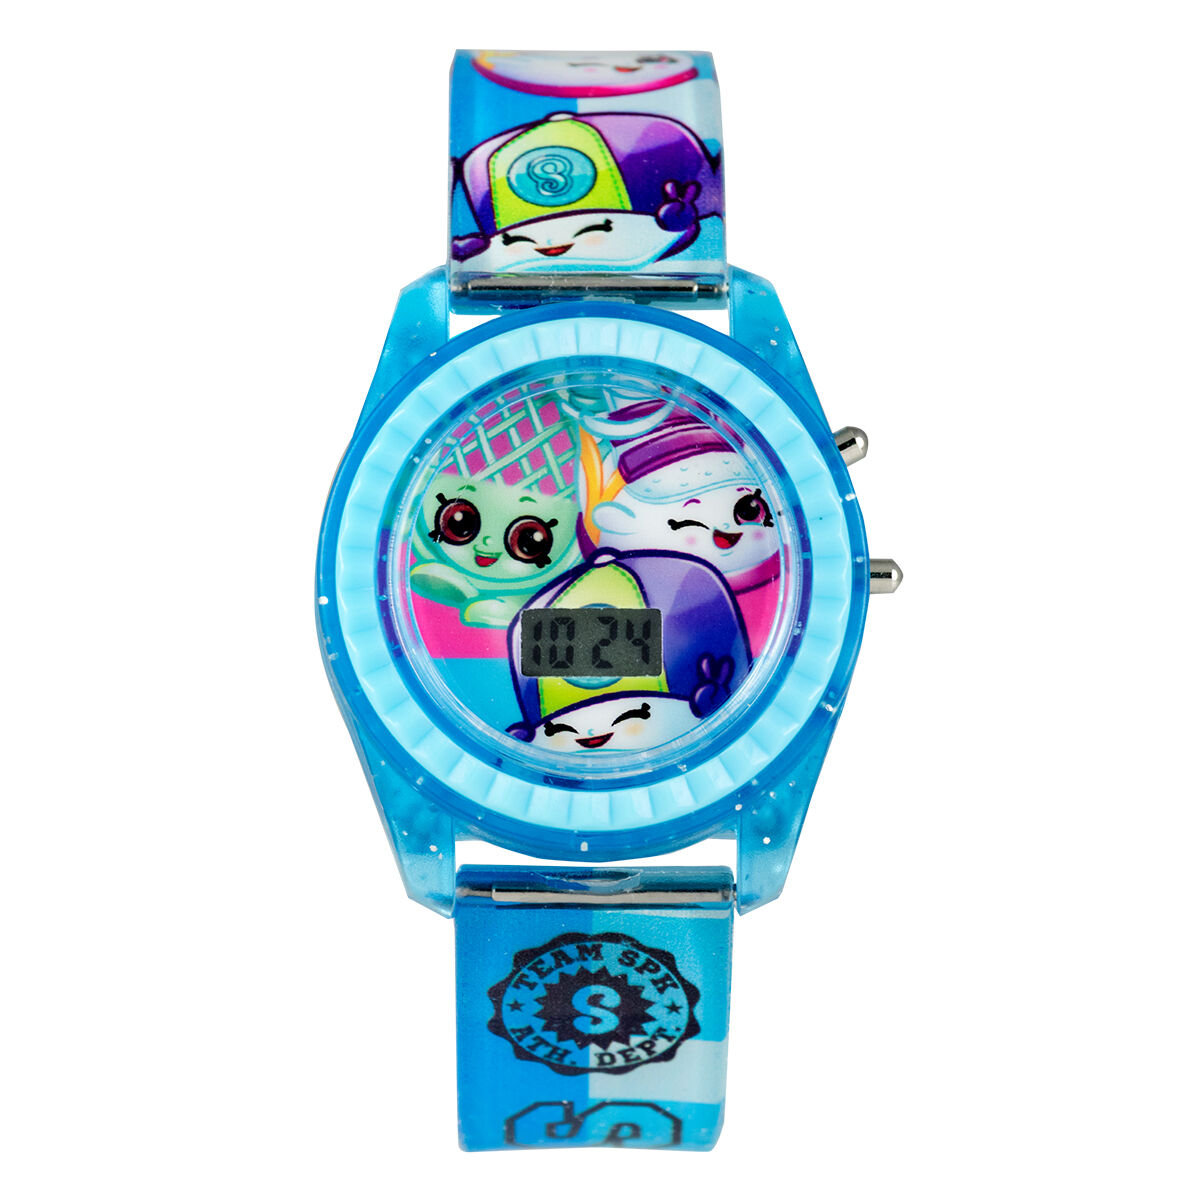 Shopkins Watch Light Up LCD Digital Dial Watch with Blue Plastic Band KIN4110